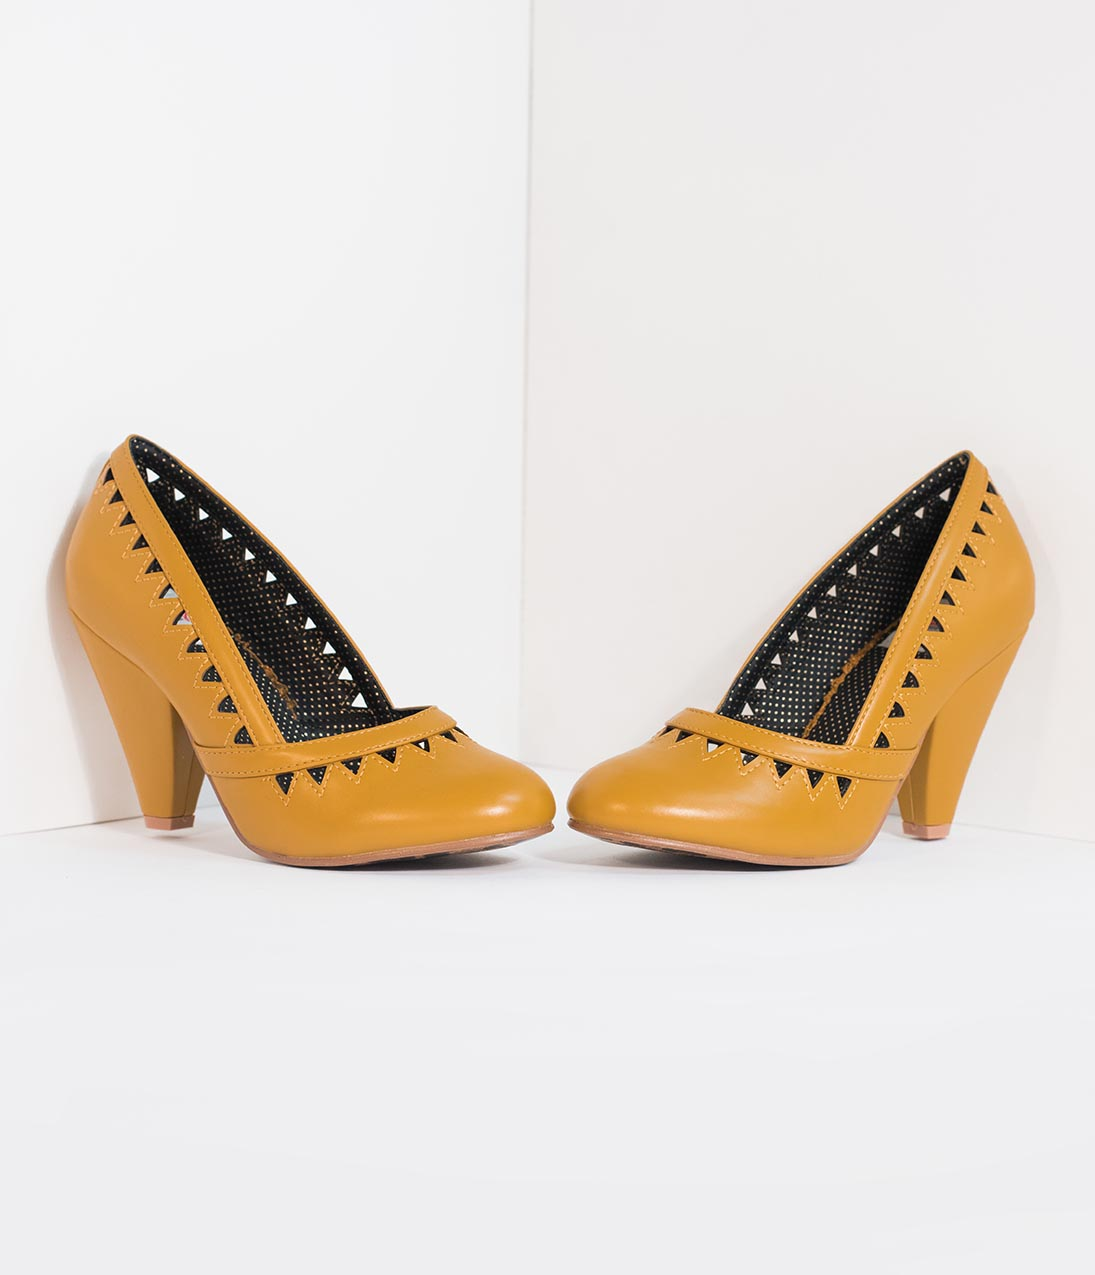 1950s Style Shoes | Heels, Flats, Saddle Shoes Bettie Page Mustard Yellow Leatherette Marjorie Cutout Heels $84.00 AT vintagedancer.com